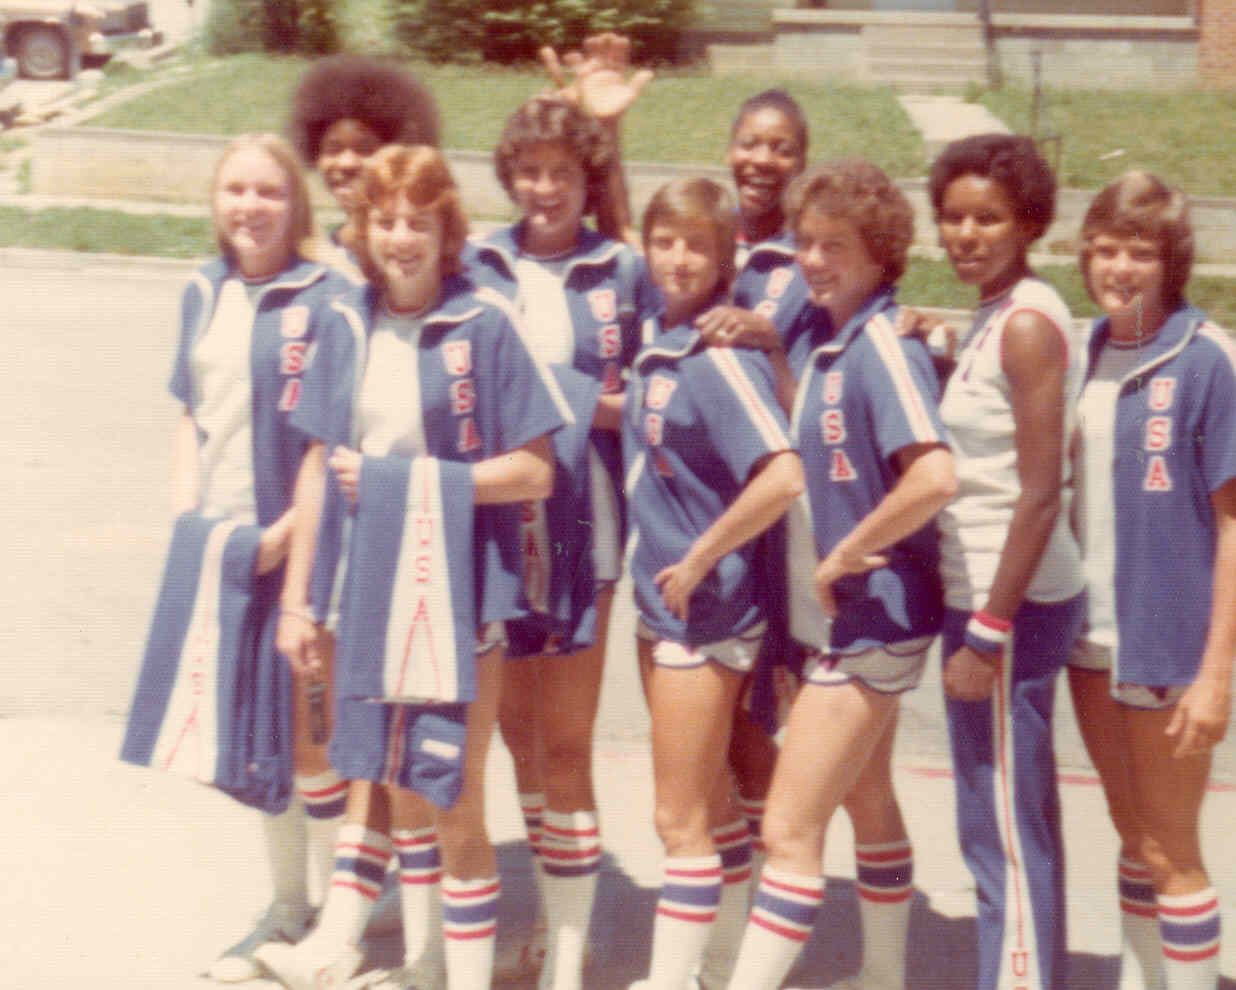 An Oral History Of The First U.S. Olympic Women's ...